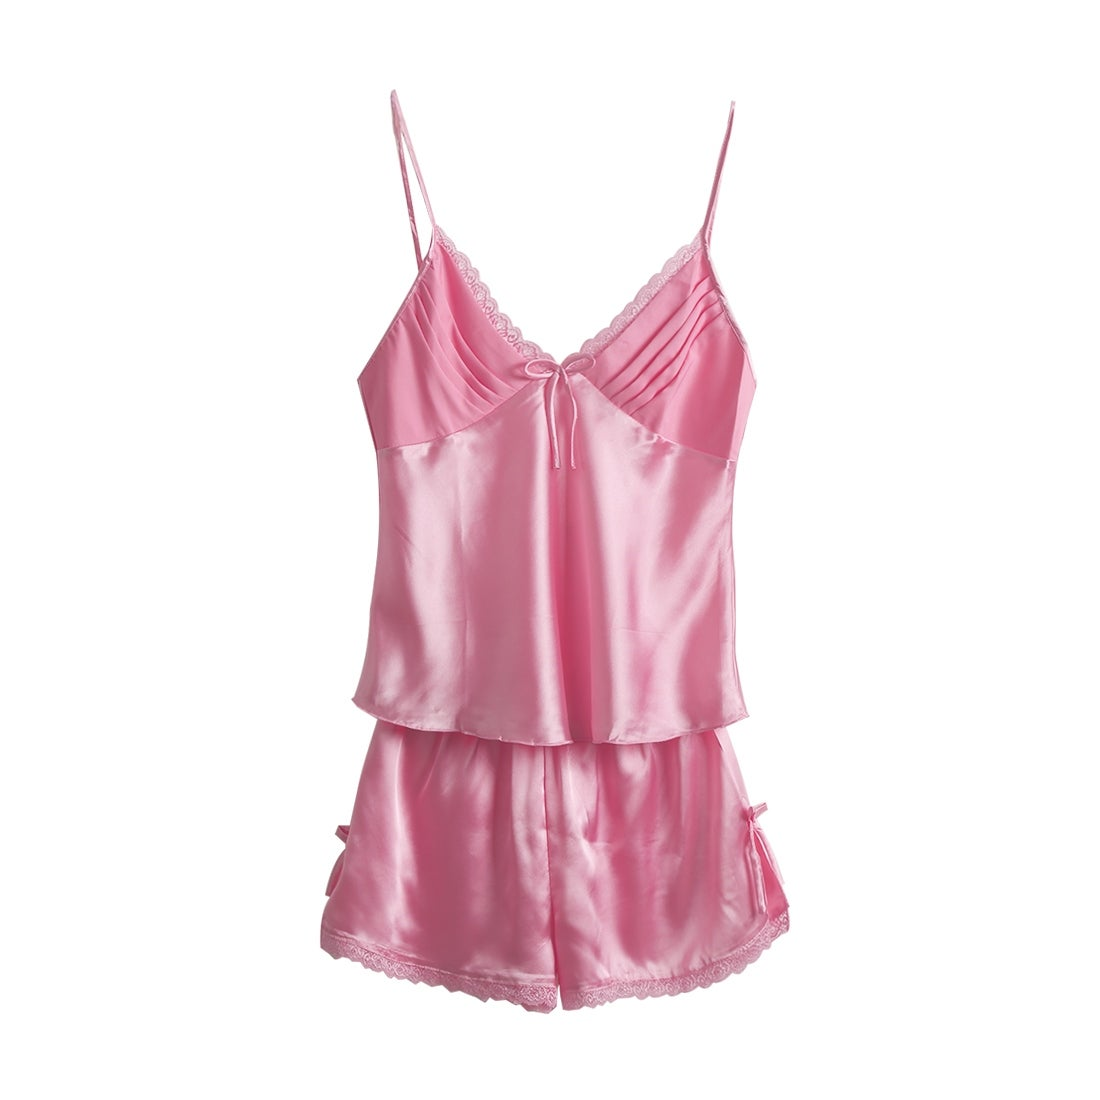 f9069b436 Shop Women Sexy Lace Silk Satin Camisole Shorts Pajama Sleepwear Sets - On  Sale - Free Shipping On Orders Over $45 - Overstock - 23162382